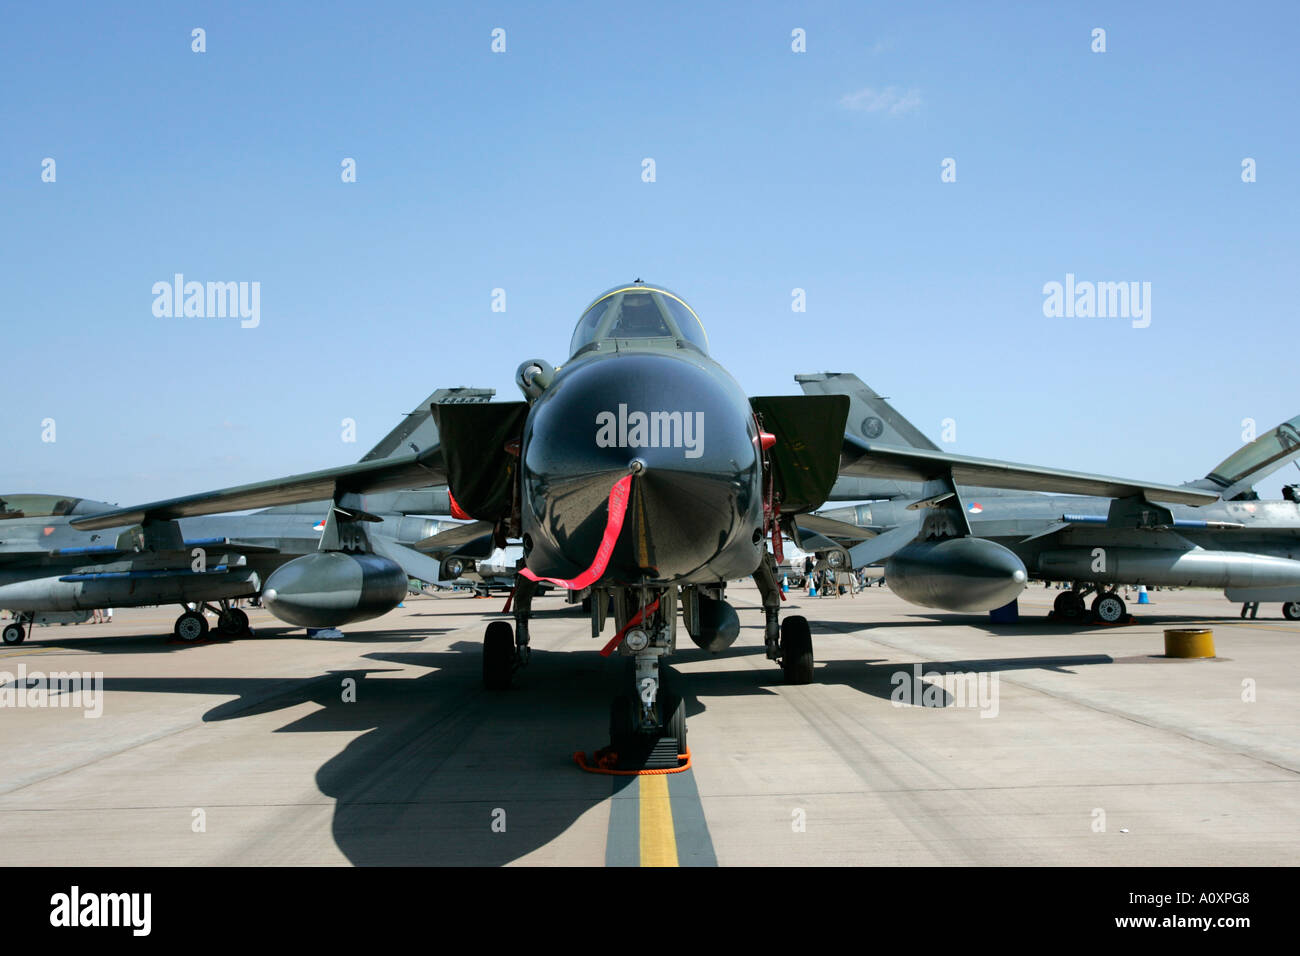 German Air Force Luftwaffe NATO Panavia Tornado IDS RIAT 2005 RAF Fairford Gloucestershire England UK - Stock Image